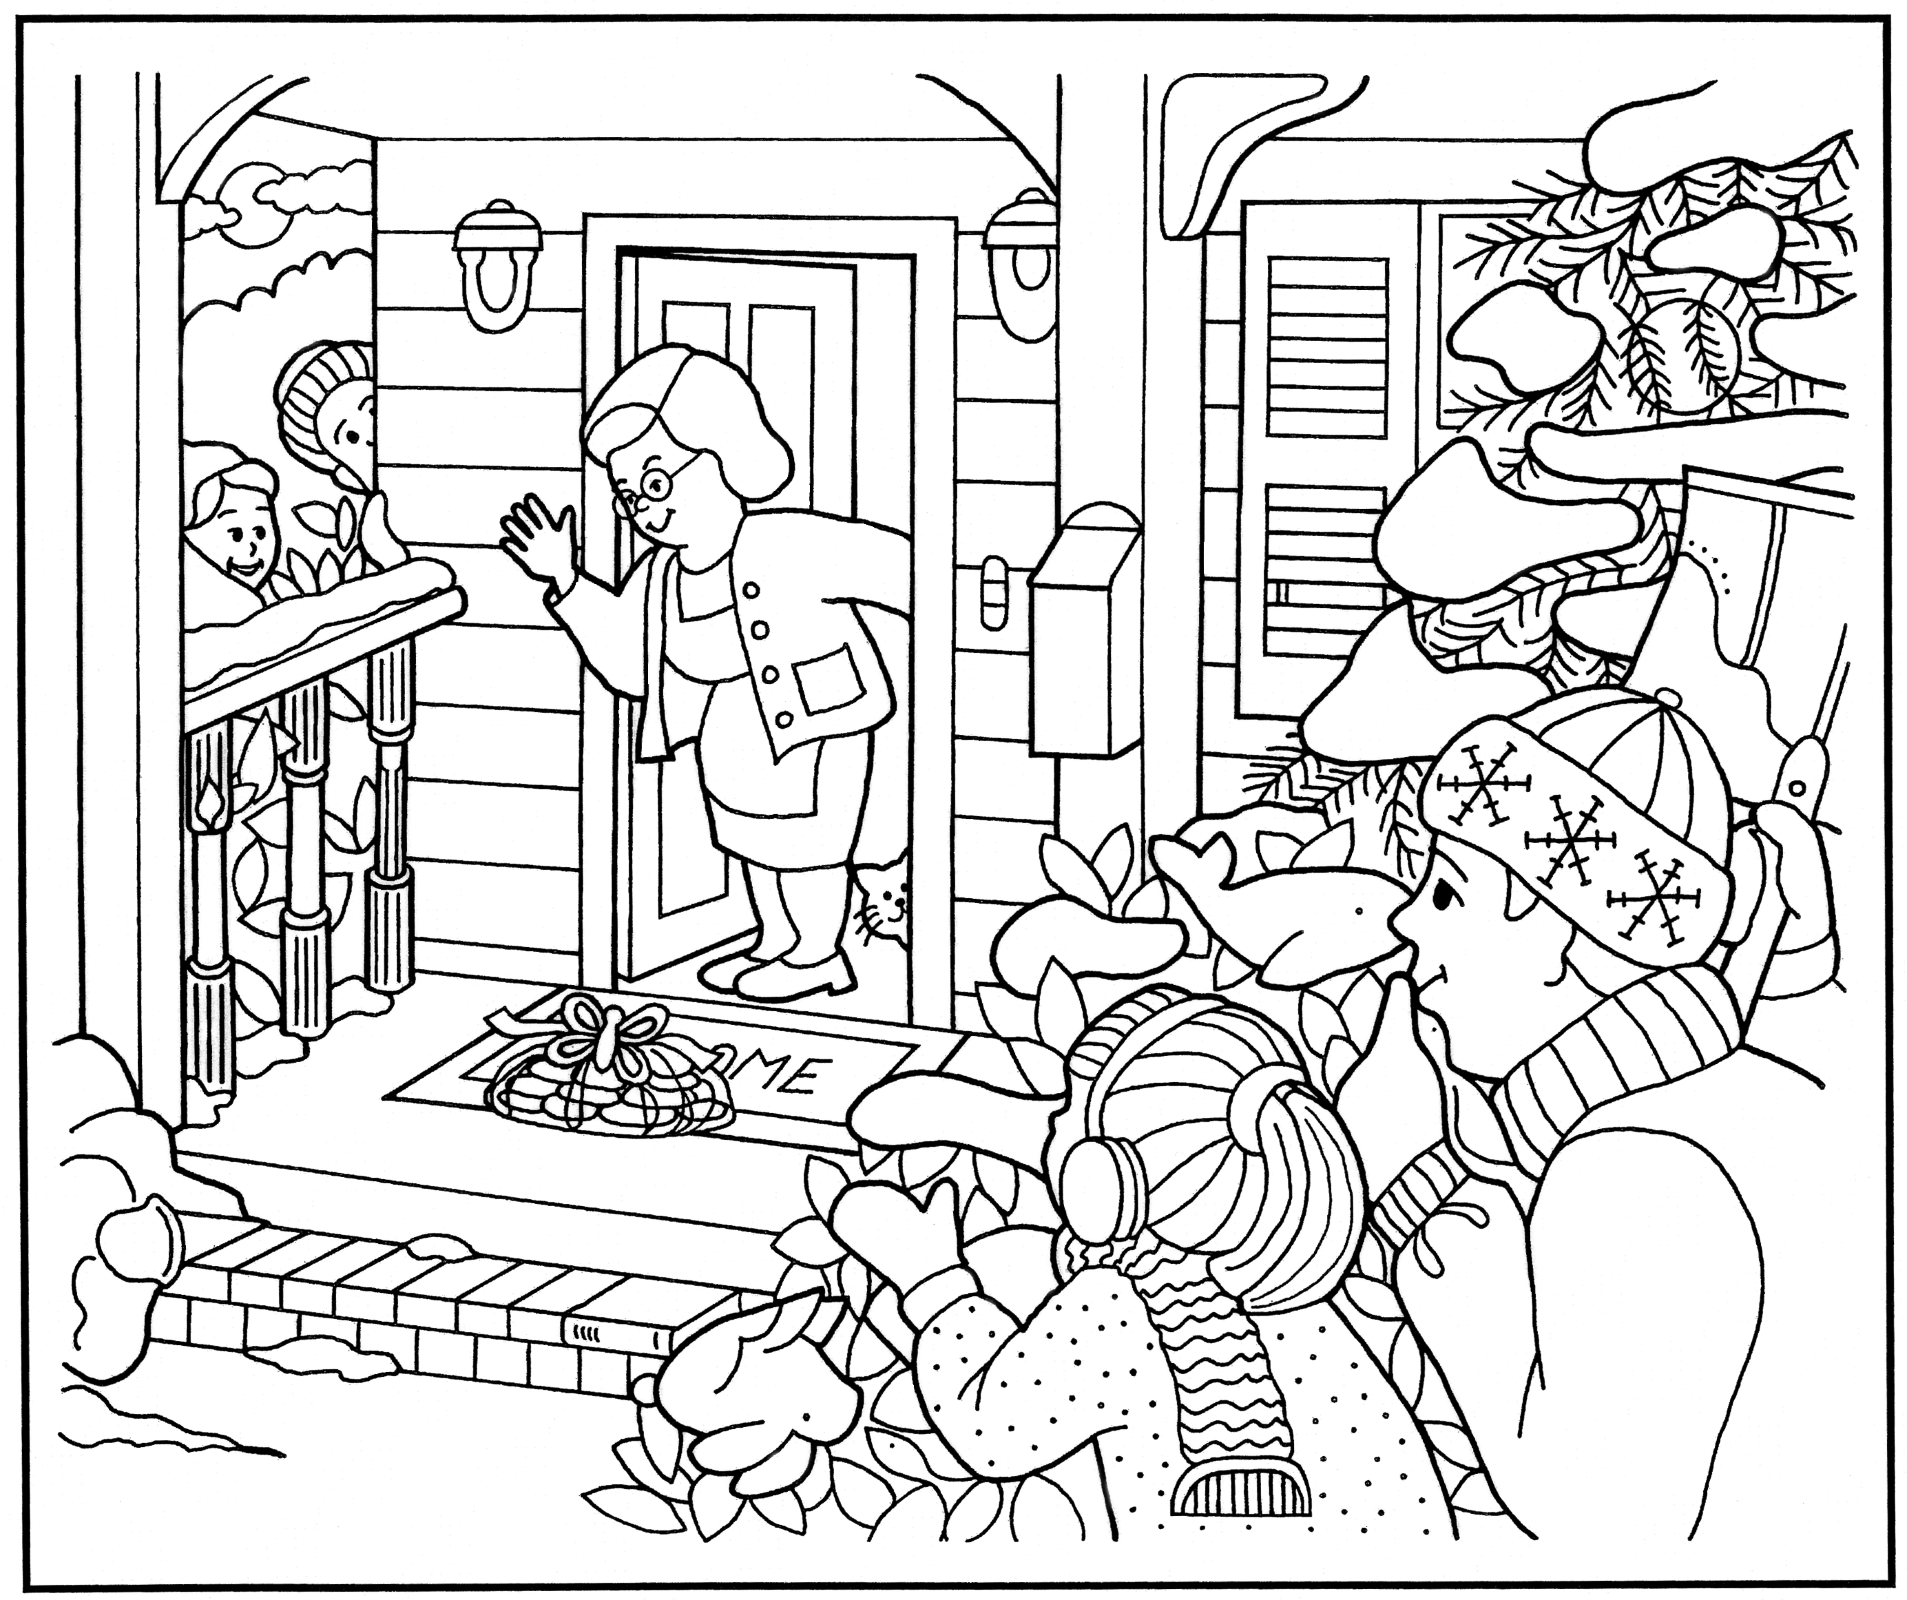 Christmas Coloring Pages Lds Org - Worksheet & Coloring Pages